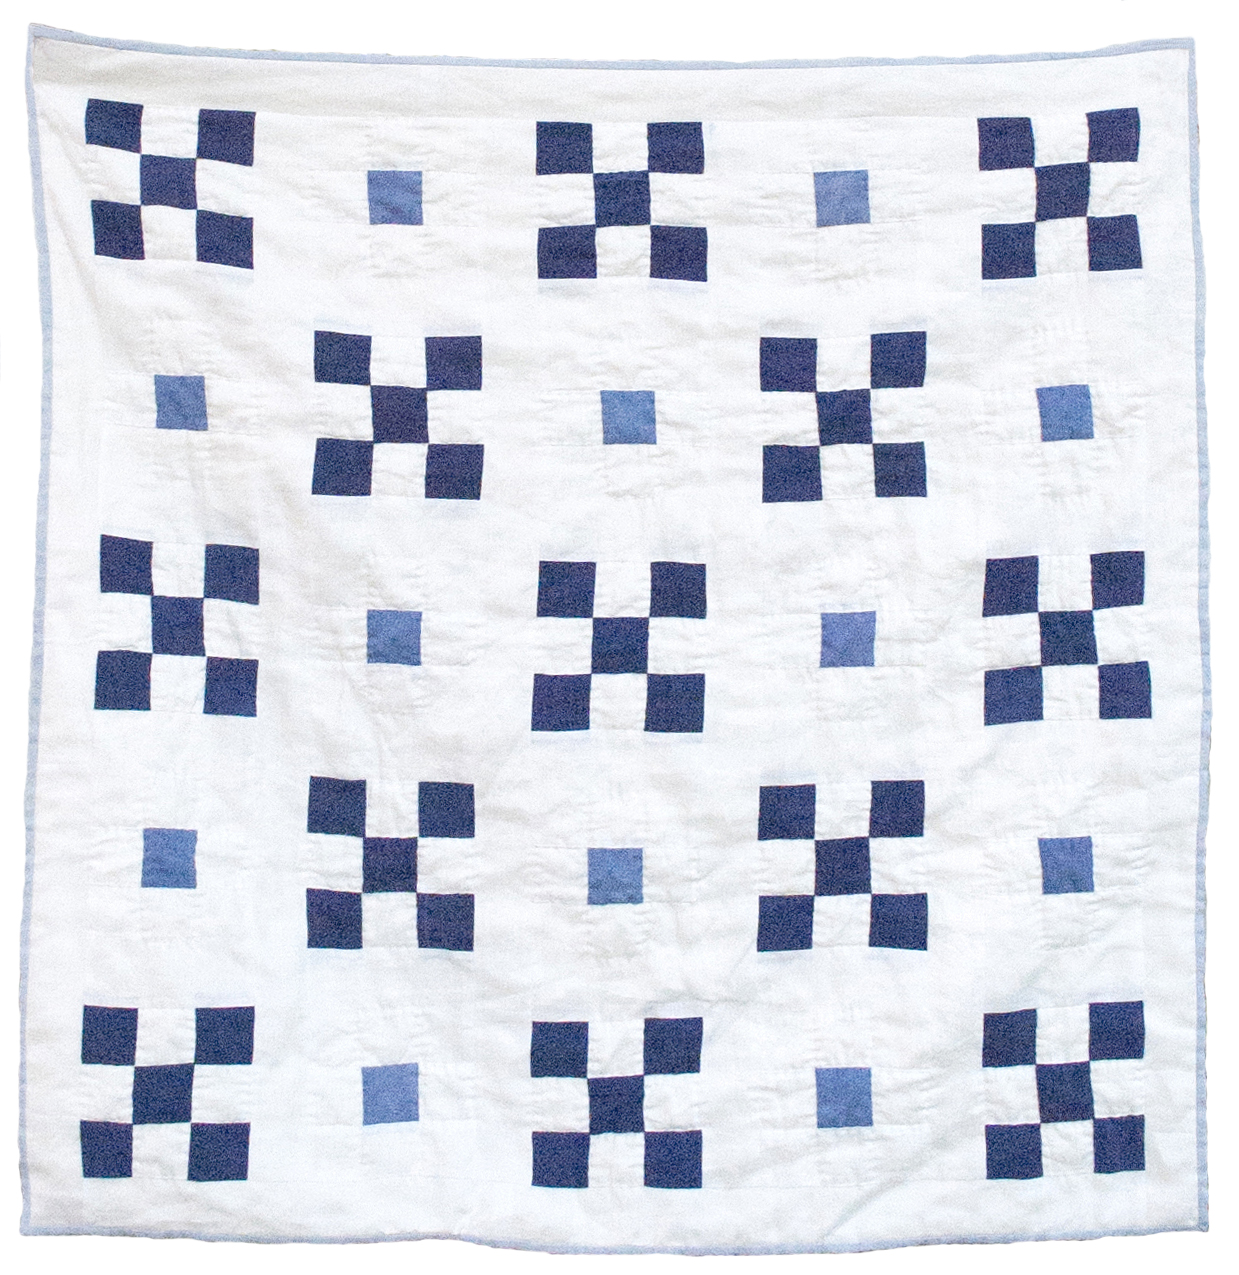 the wild blueberry quilt